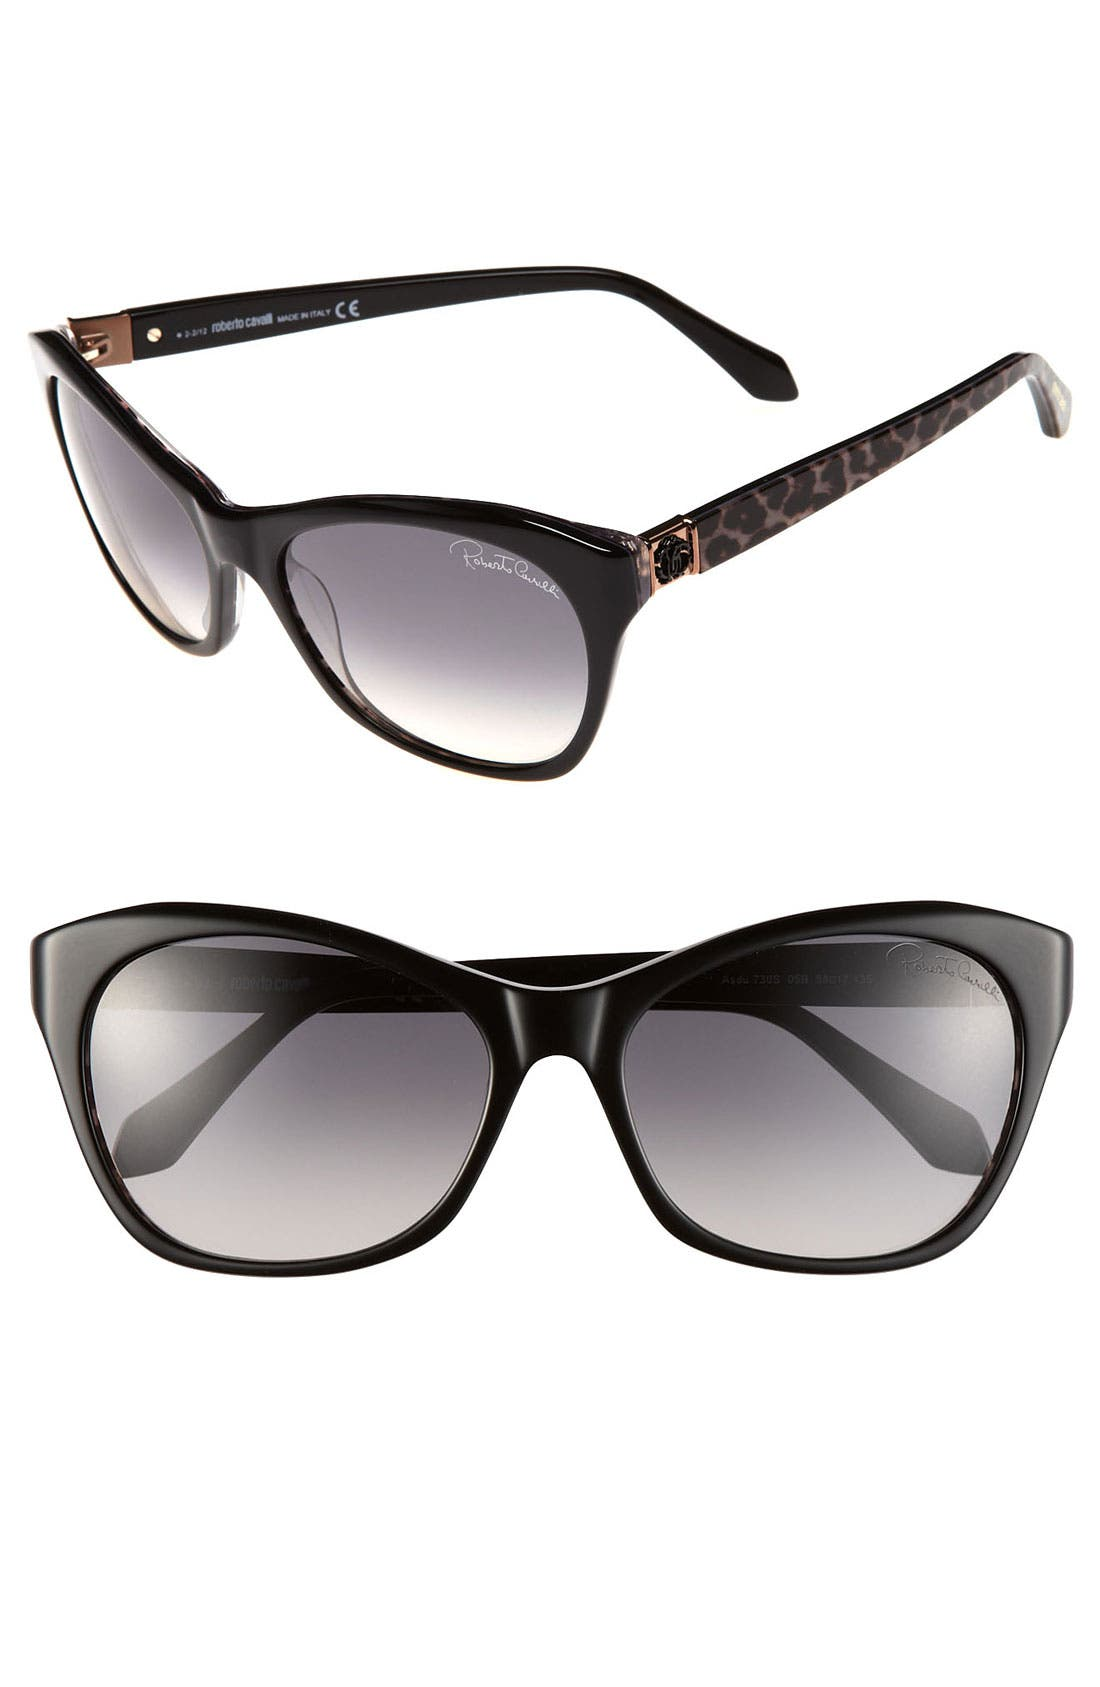 Main Image - Roberto Cavalli 58mm Sunglasses